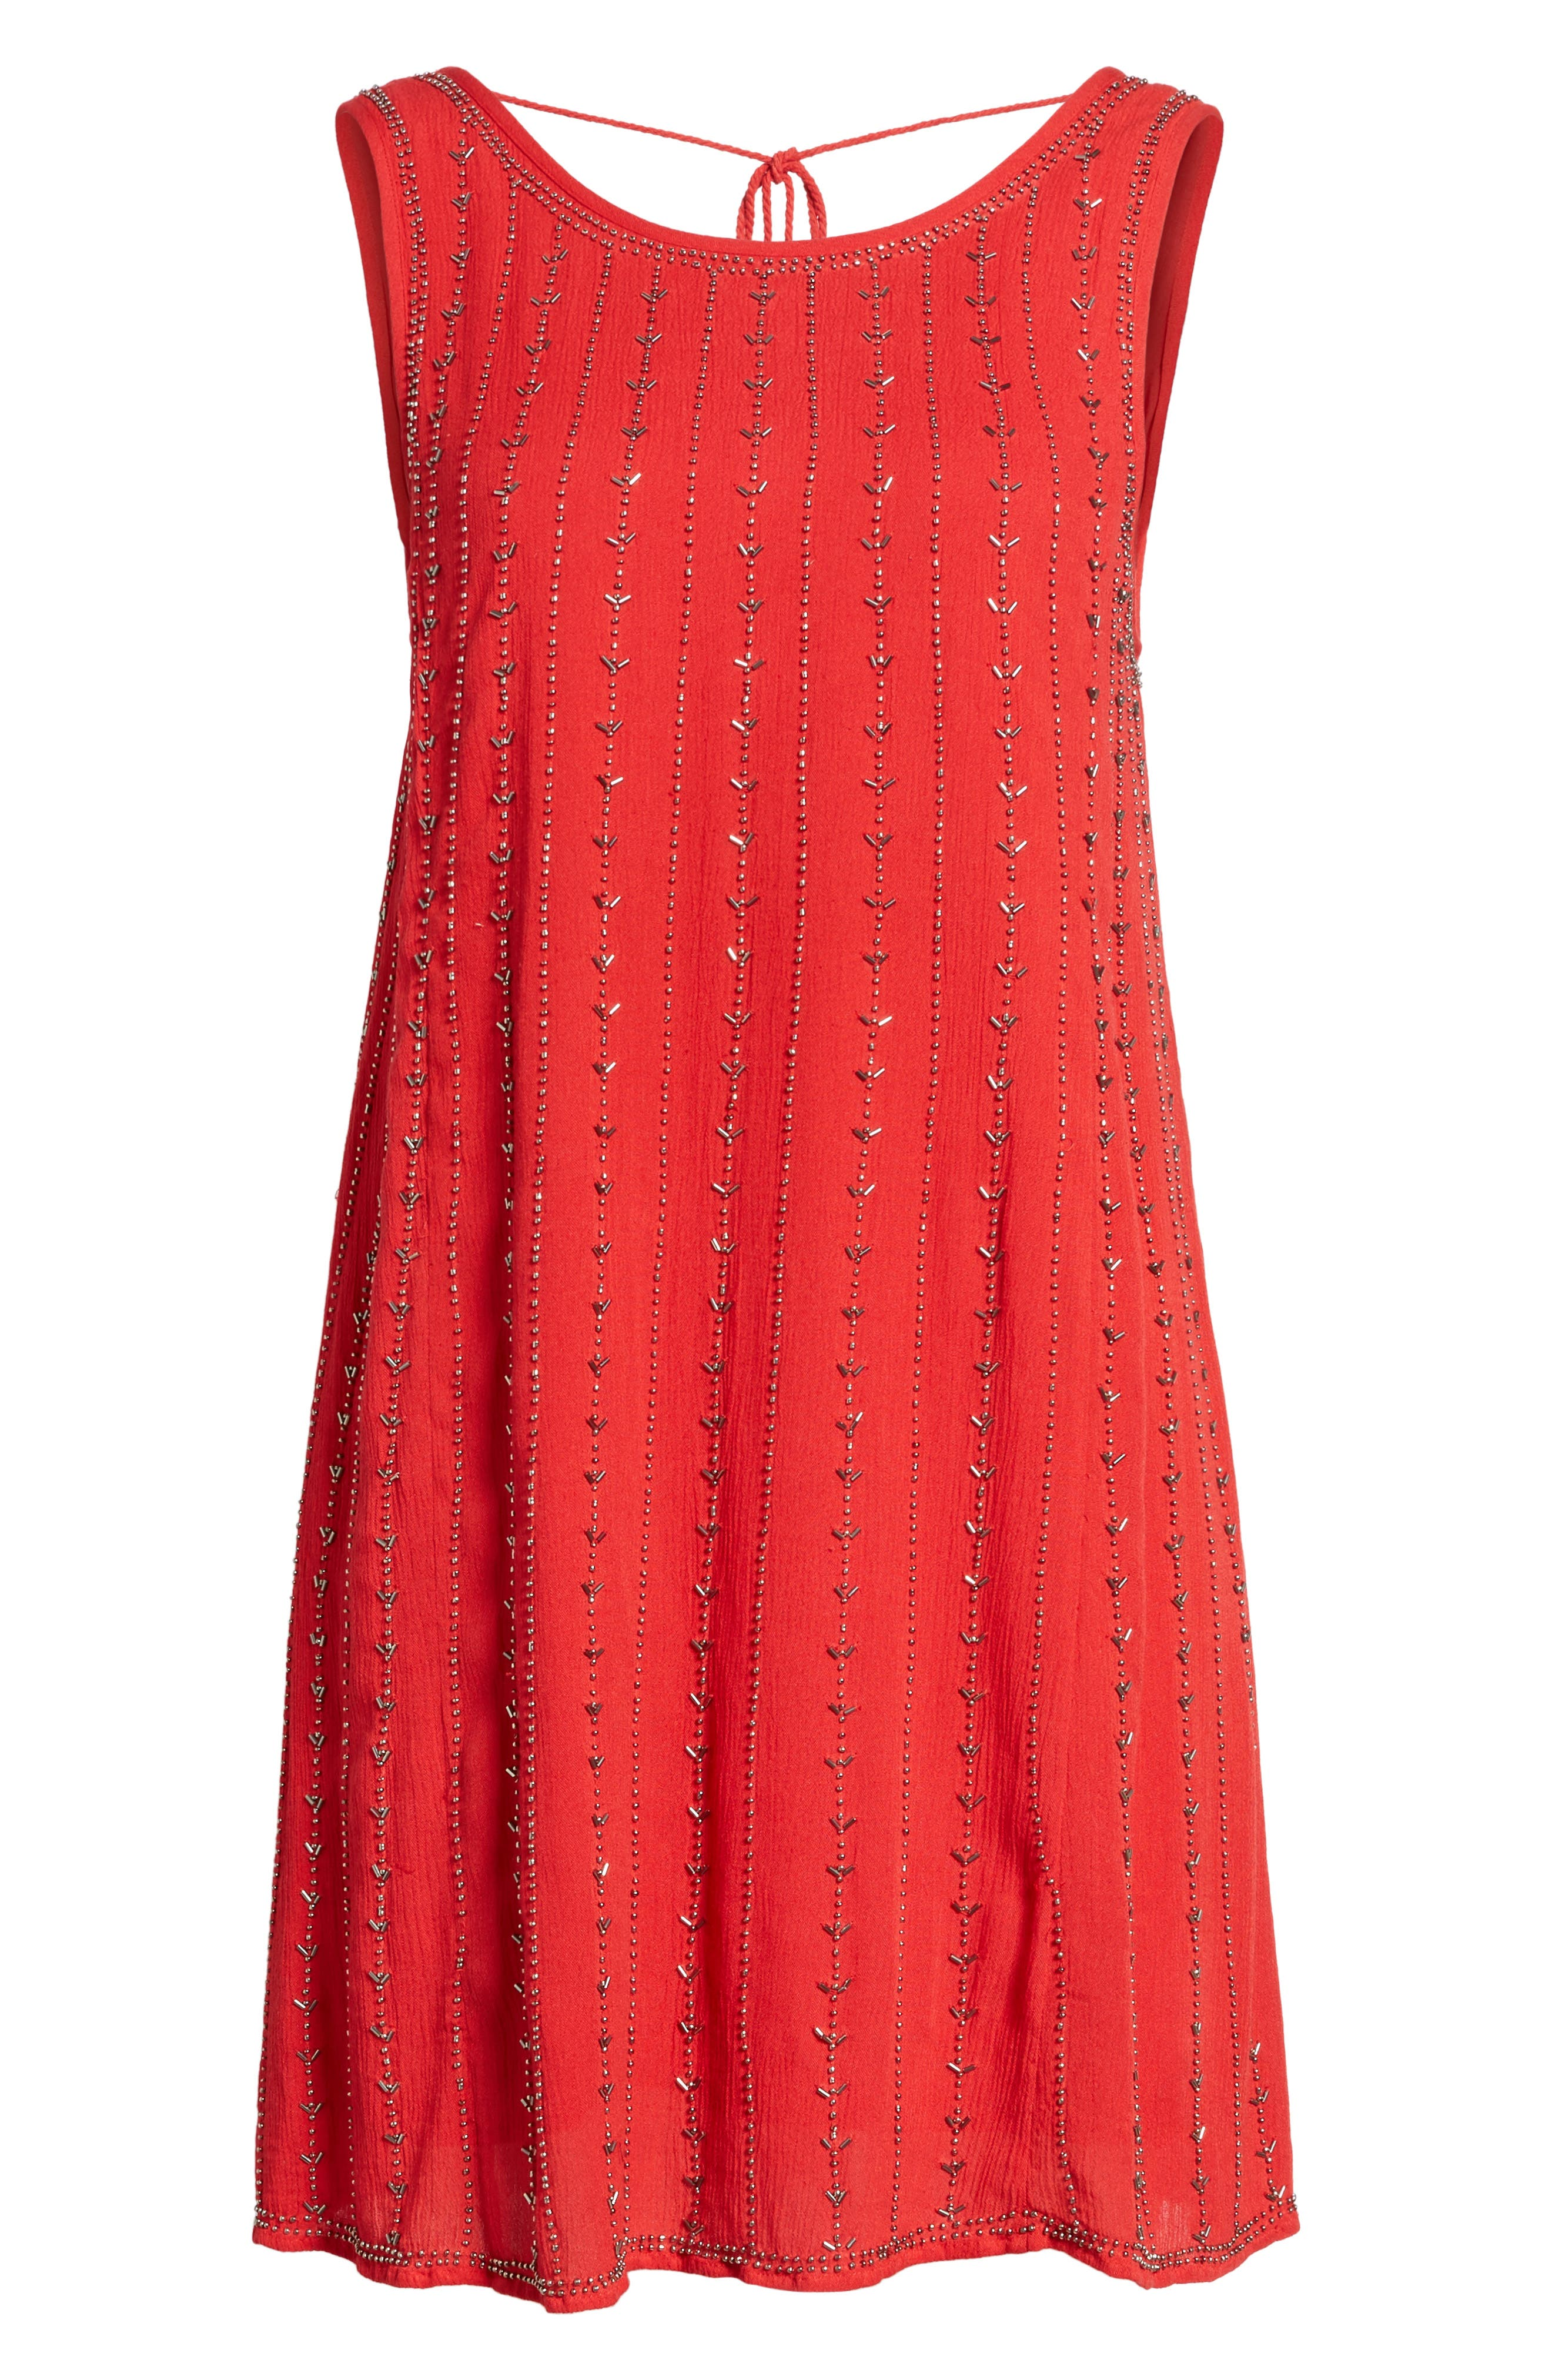 Rouge Beaded Swing Dress,                             Alternate thumbnail 6, color,                             Red